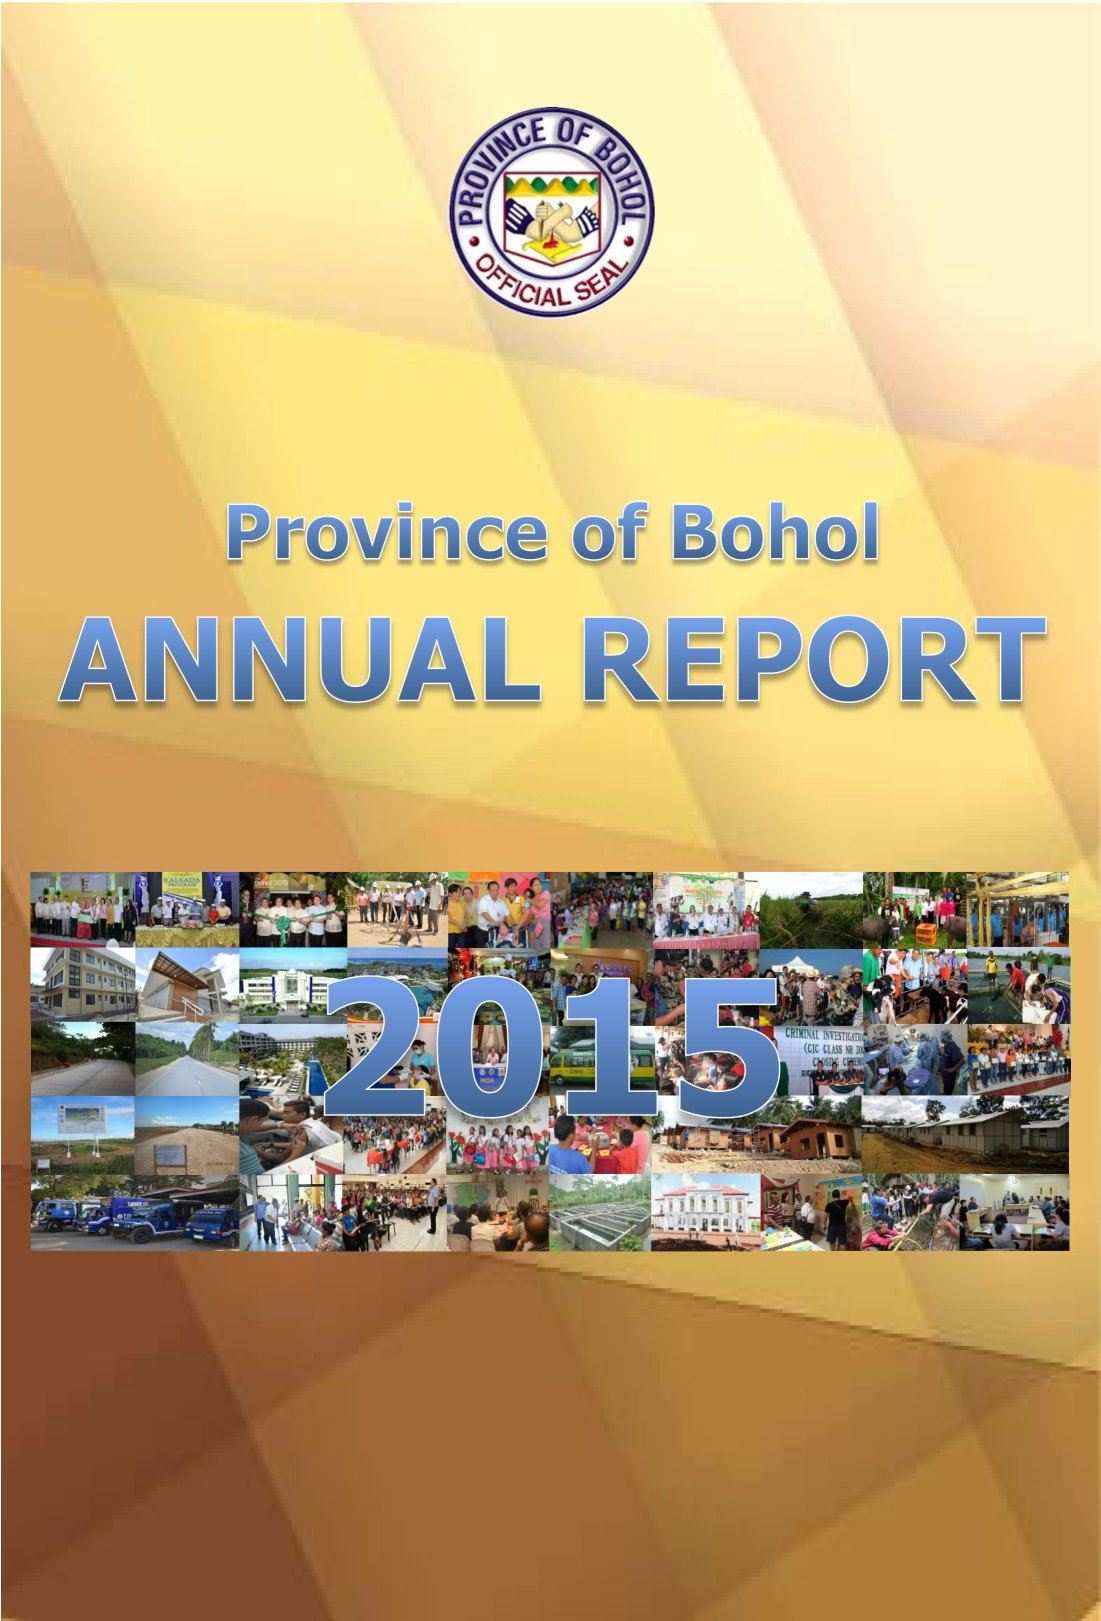 Annual Report 2015. Click on the image to download the document